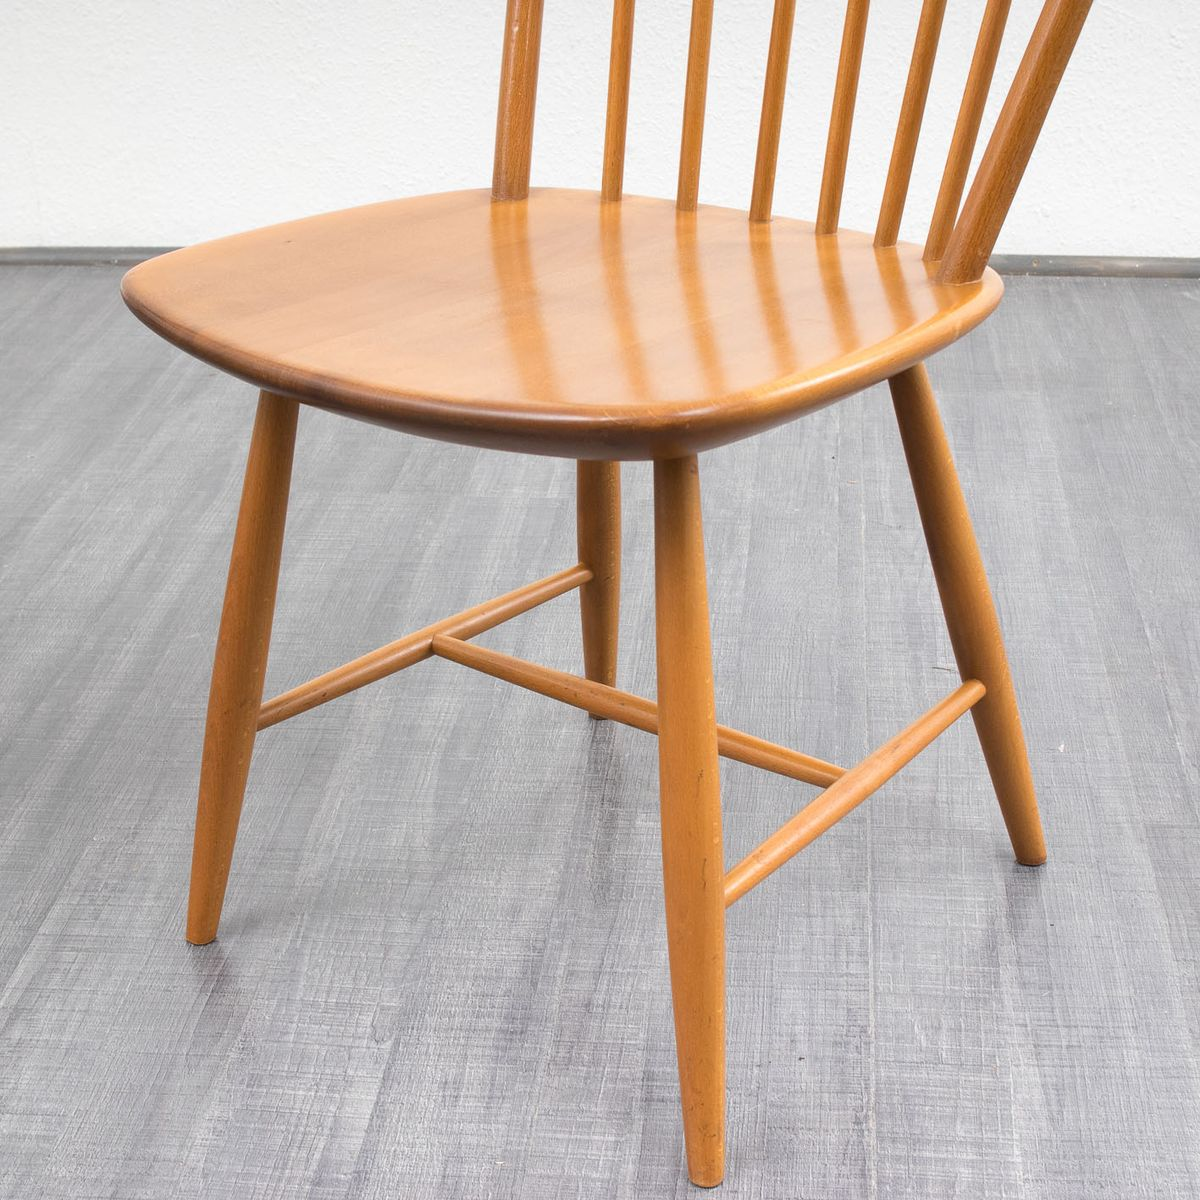 Vintage beech wood dining chairs set of 4 15